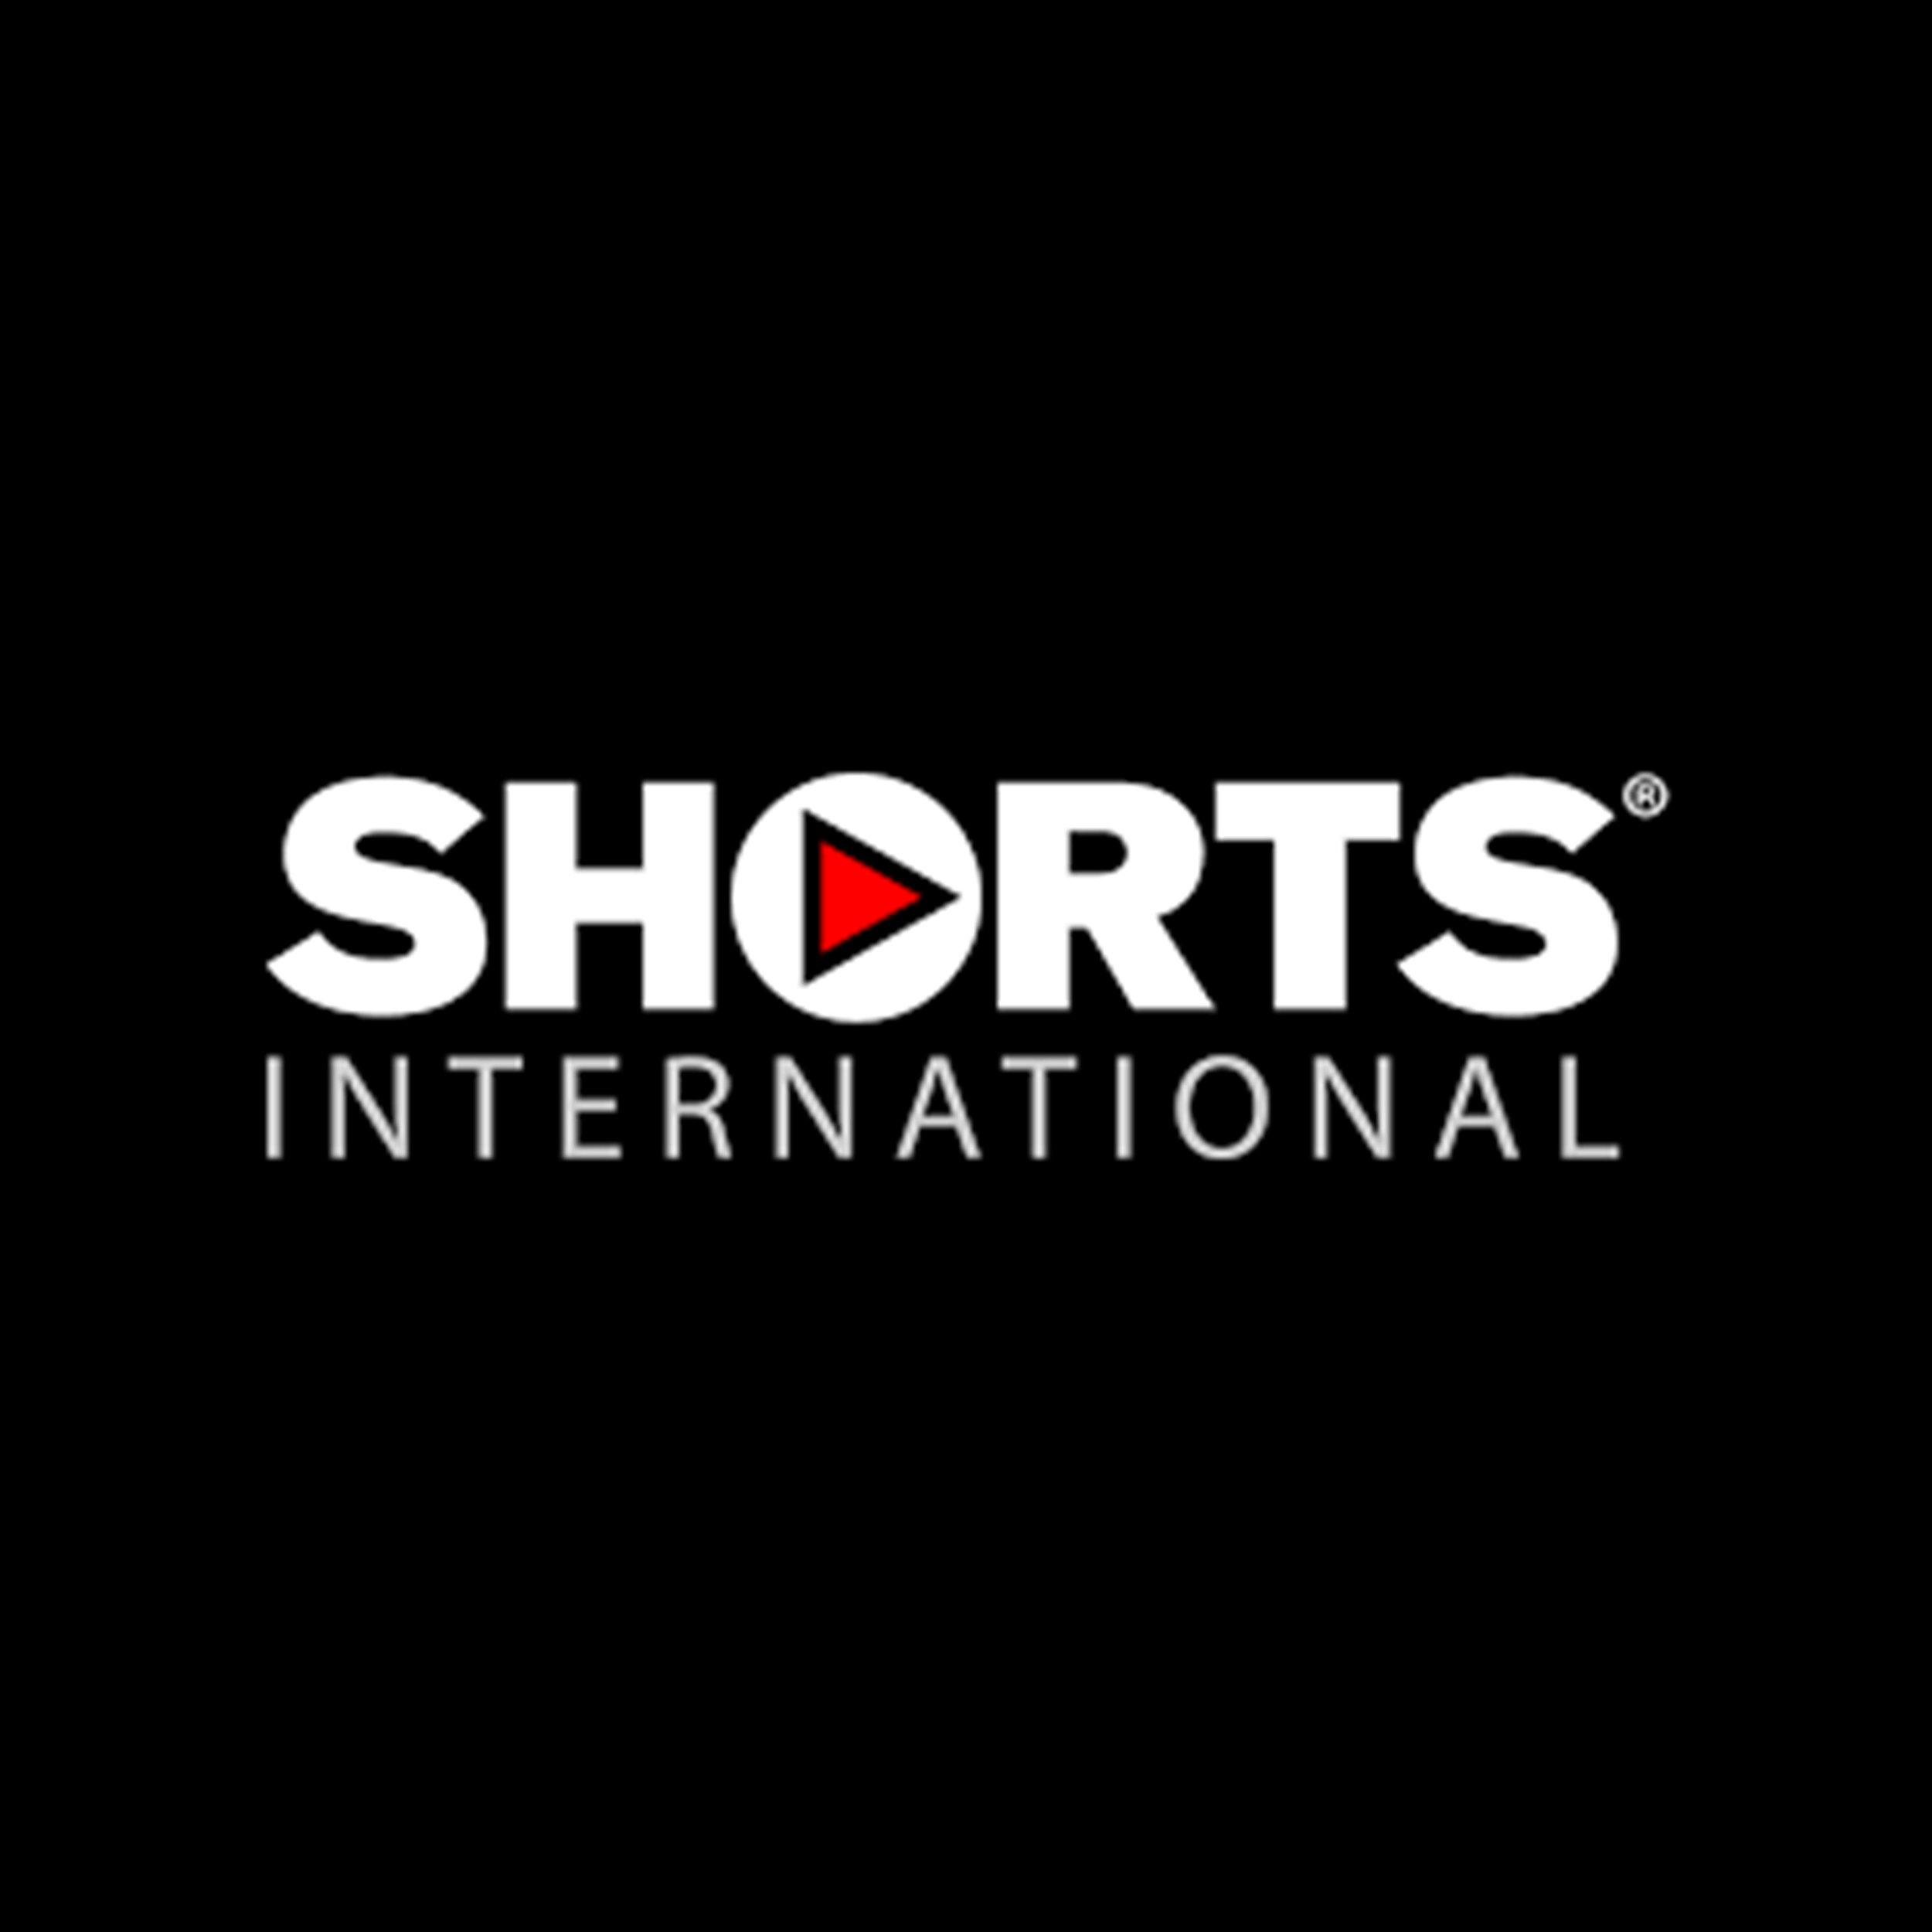 shortsinternational